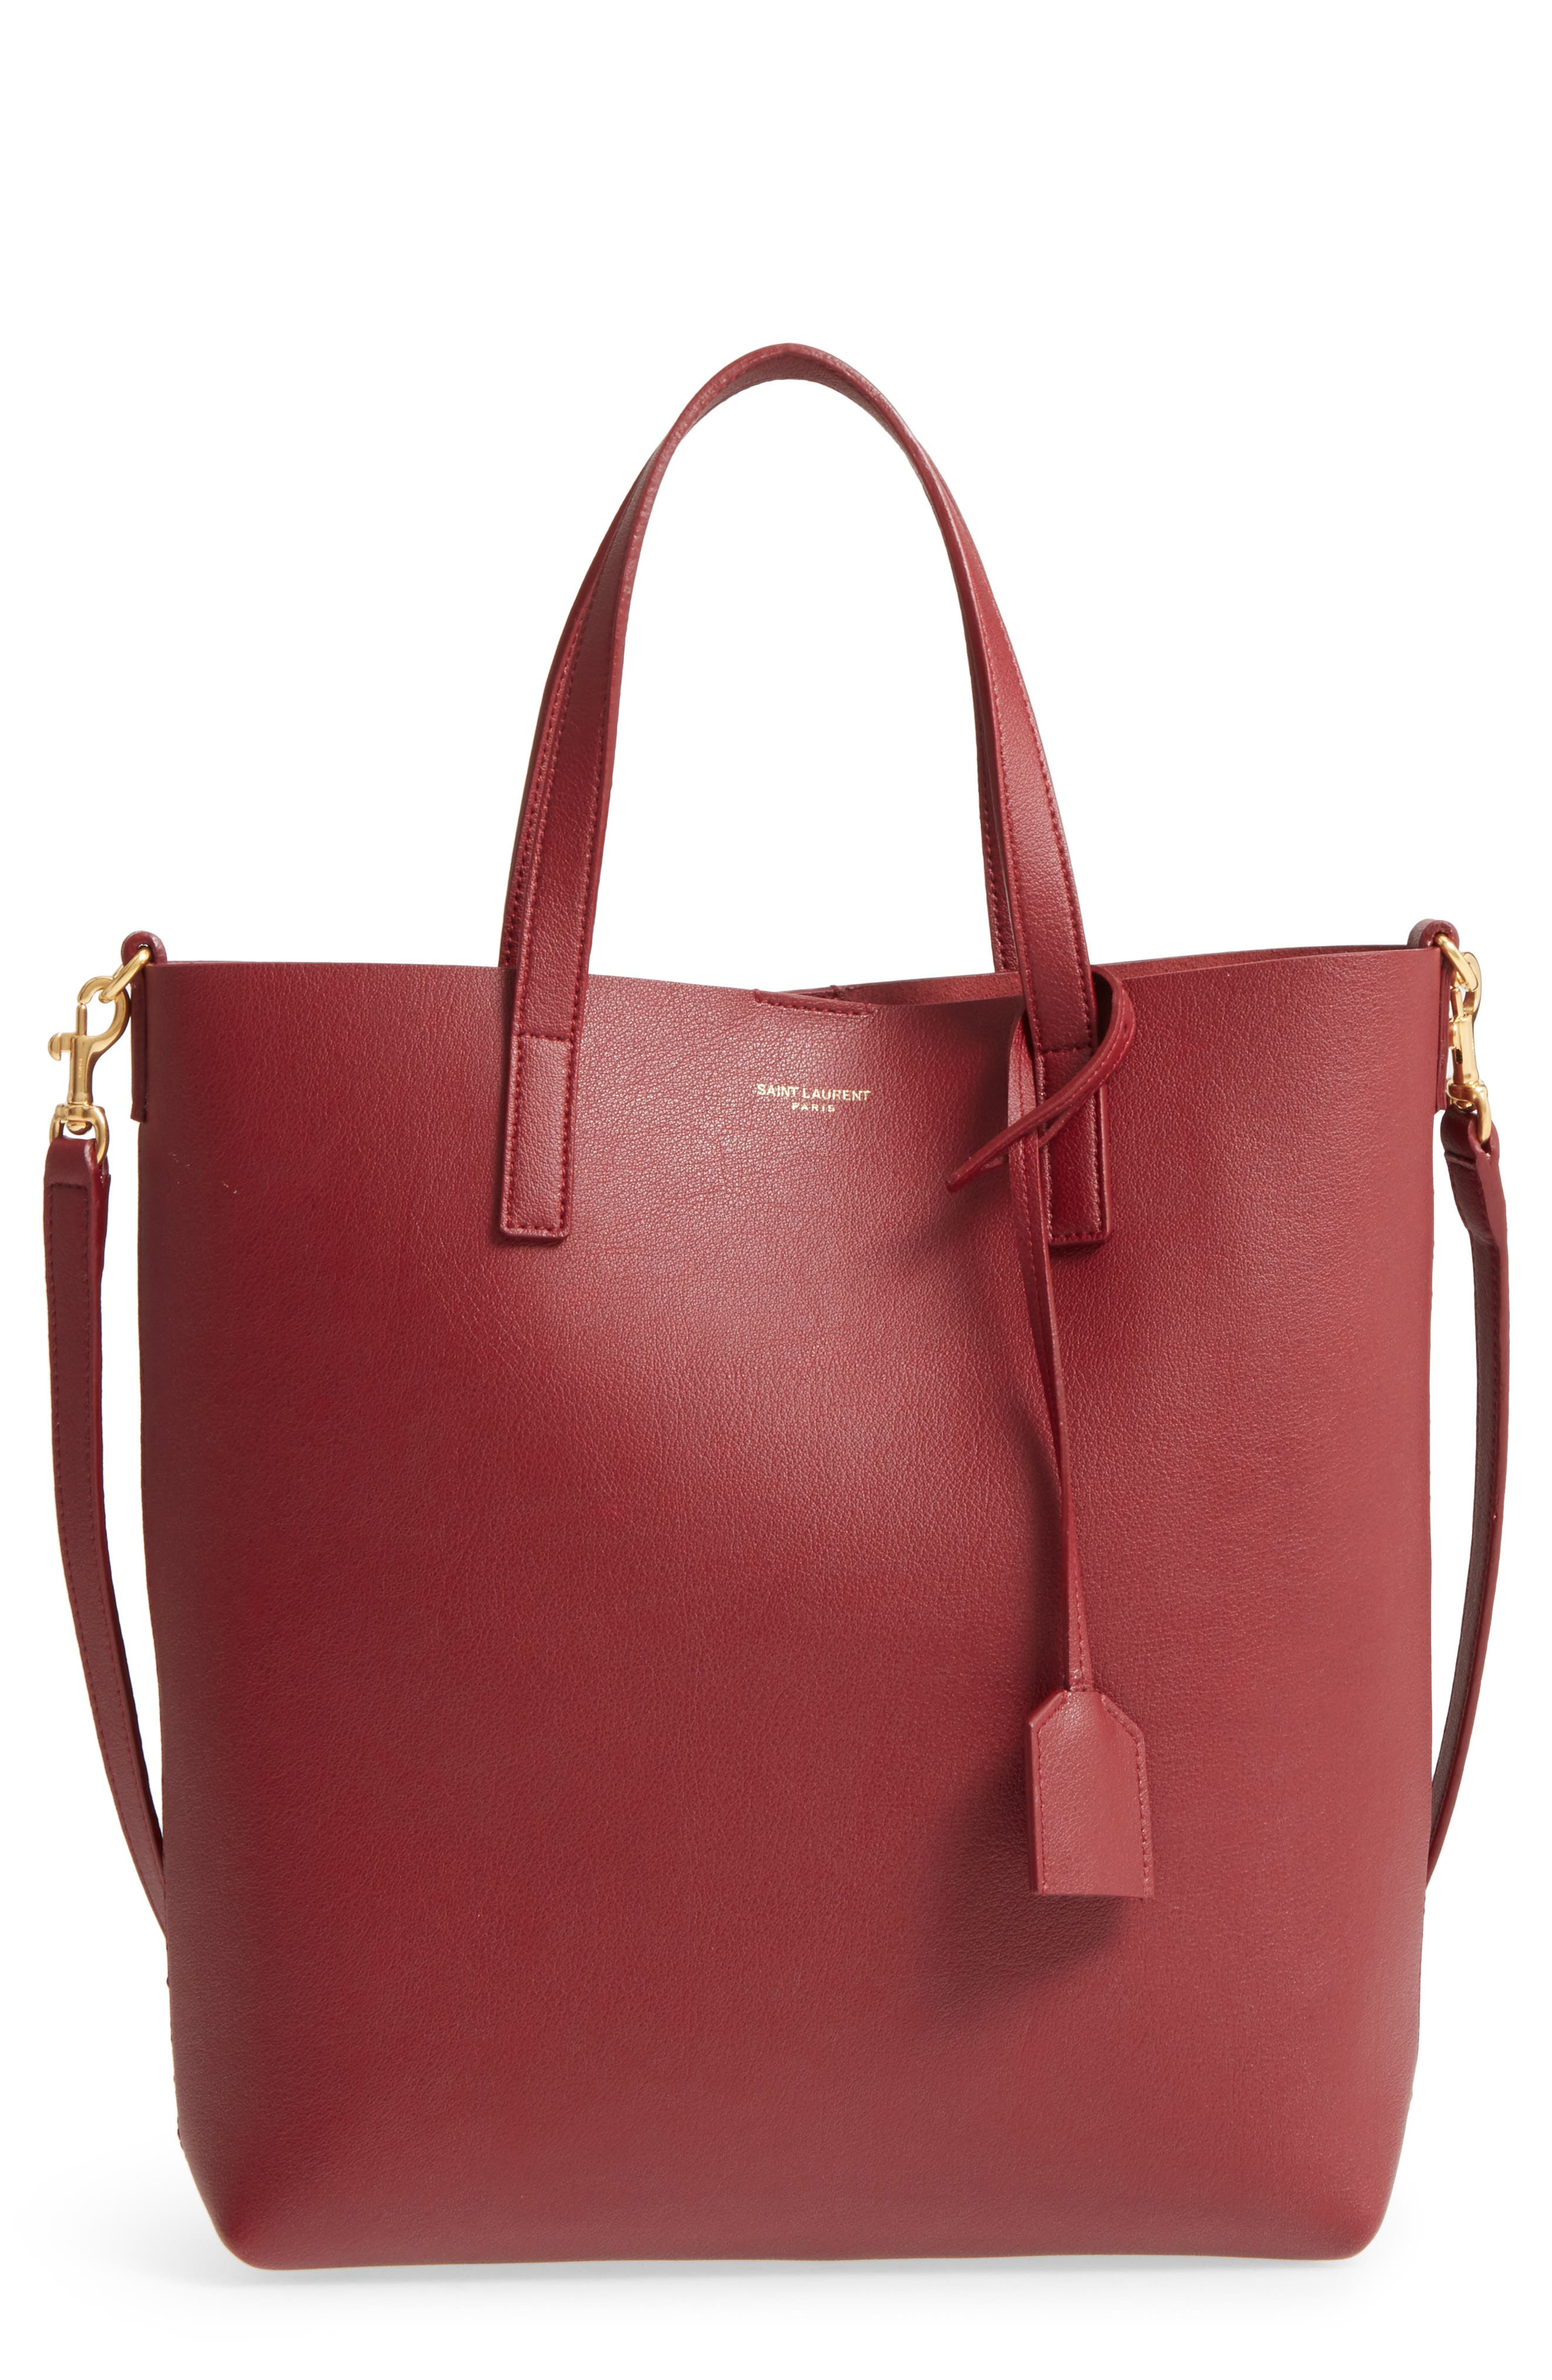 Alternate Image 1 Selected - Saint Laurent Toy Shopping Leather Tote